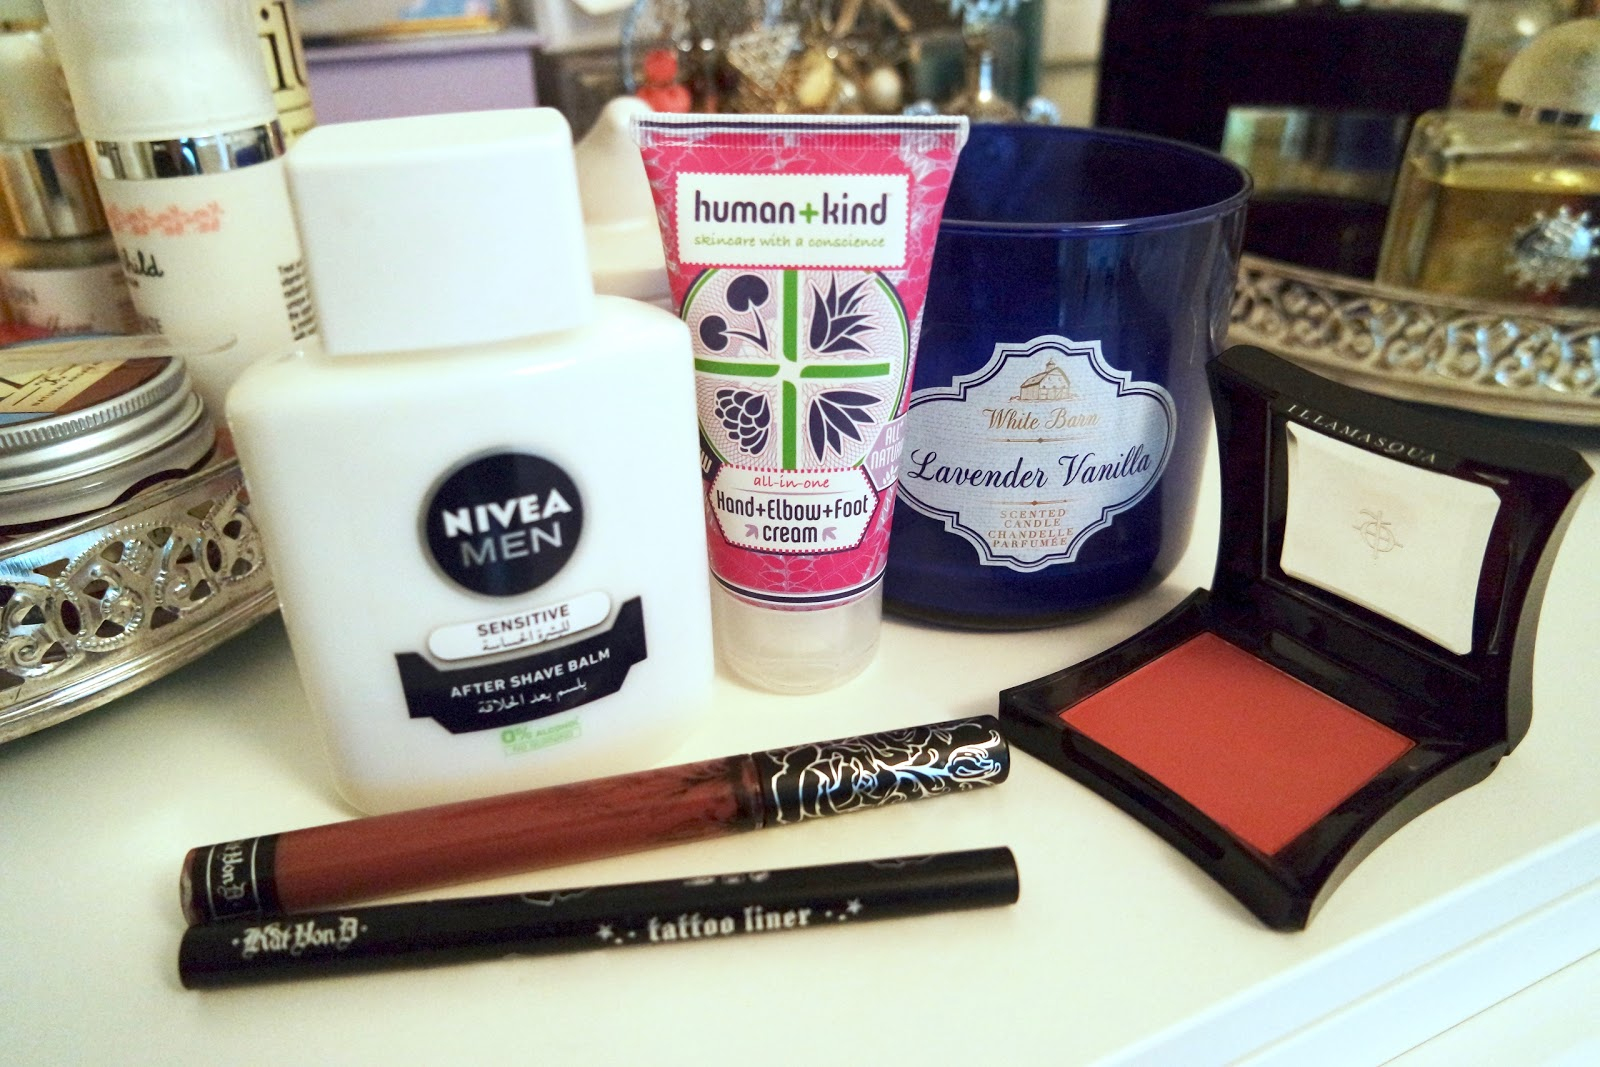 illamasqua kat von d nivea human kind bath and body works